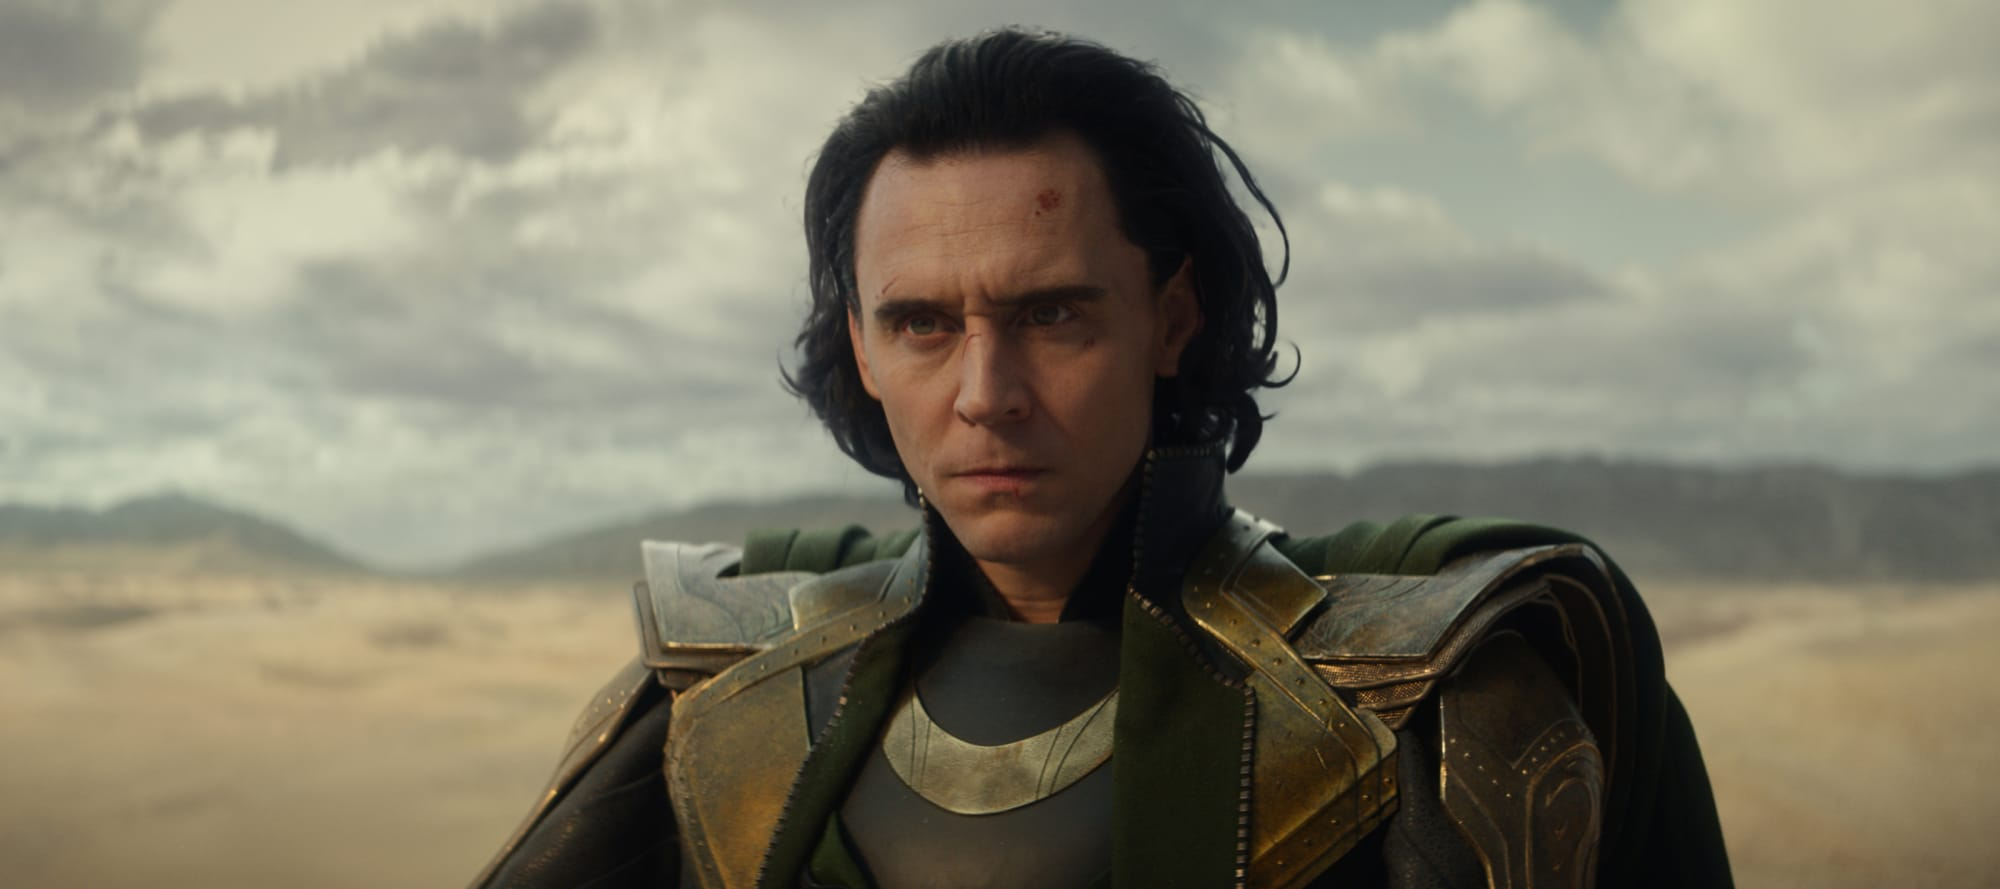 Is Loki cancelled?: The truth about Loki season 2 and its future